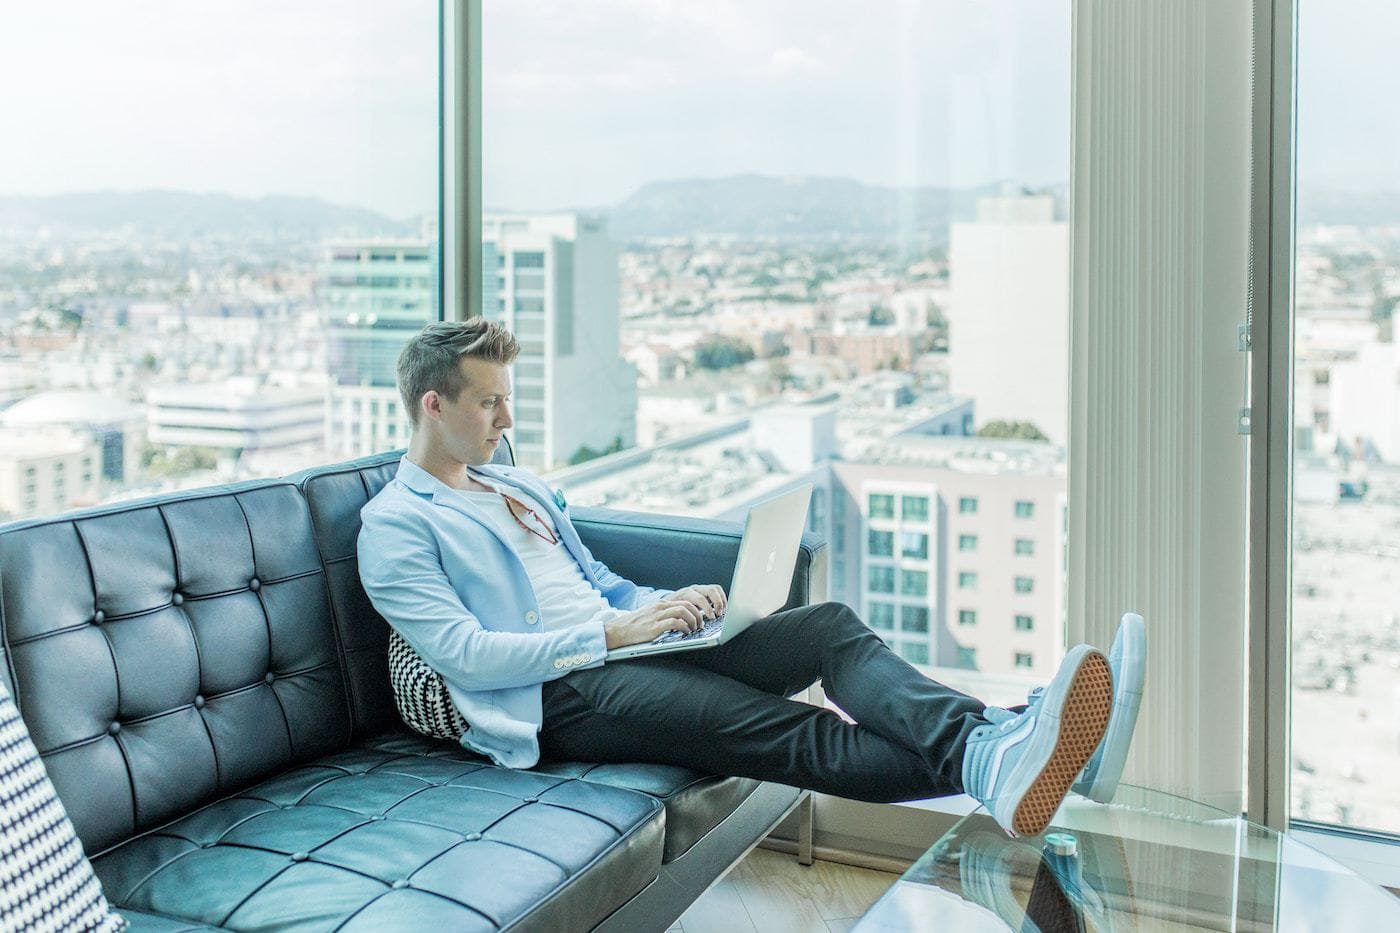 blogger typing on laptop on a couch